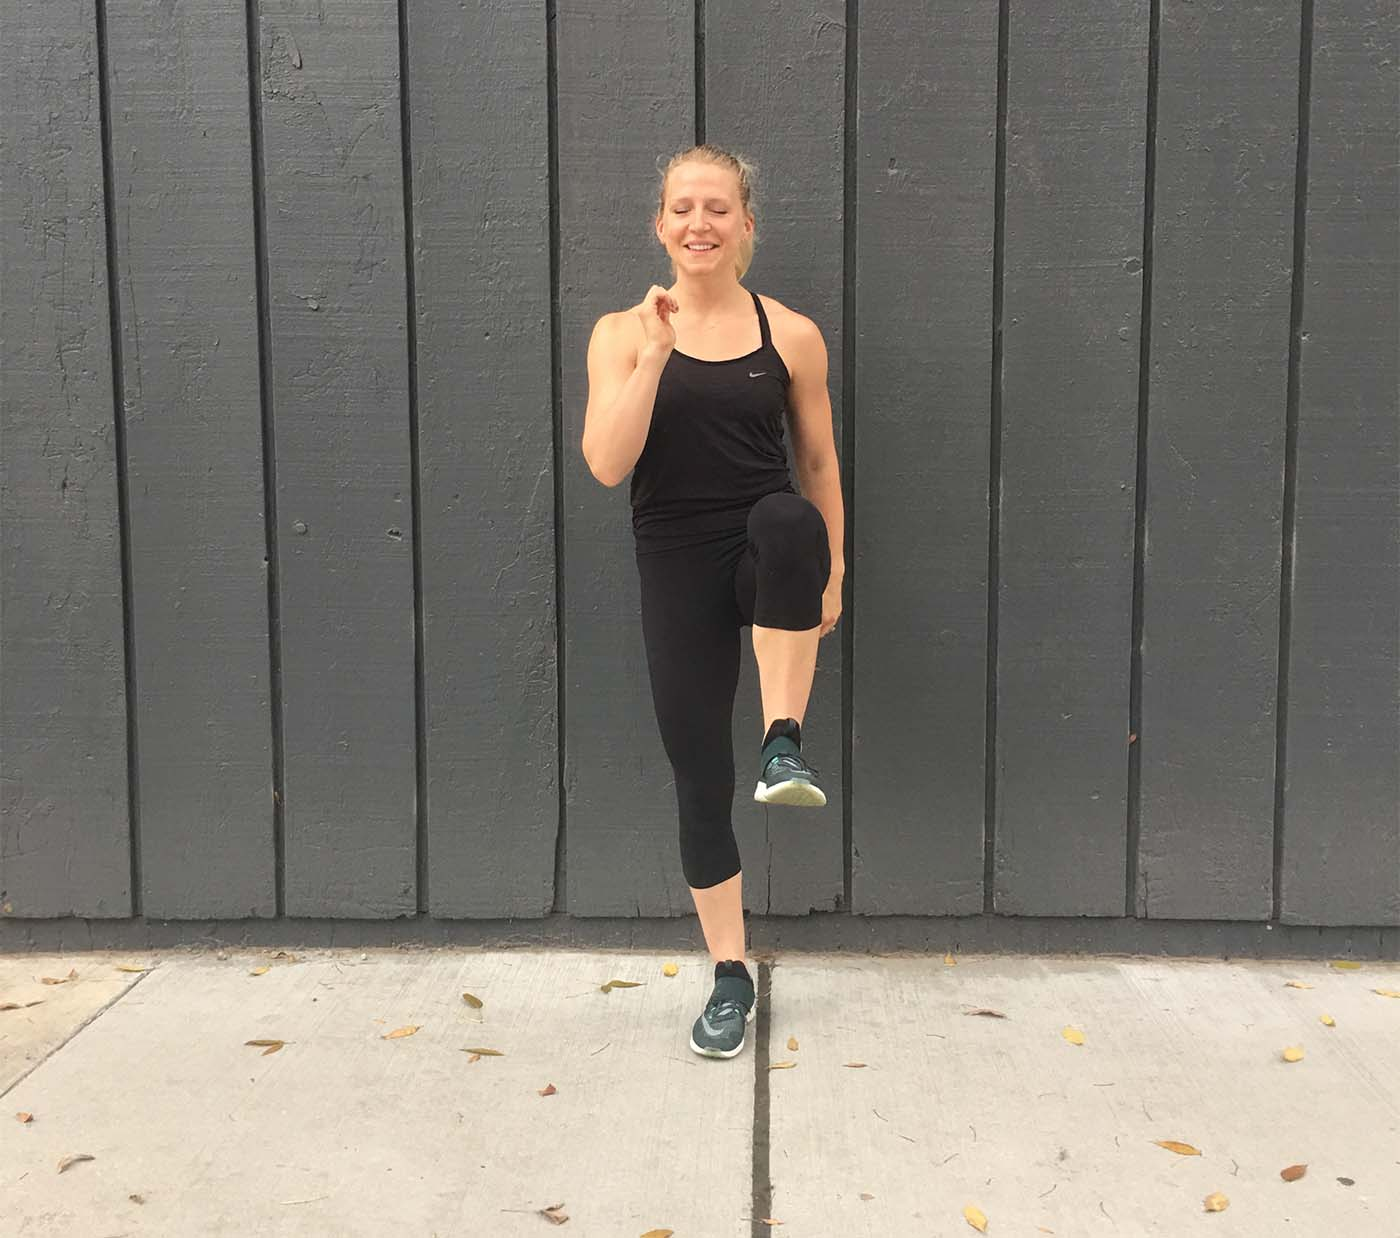 asweatlife_a-30-minute-workout-to-do-on-the-road-or-wherever-you-are_high-knees_2